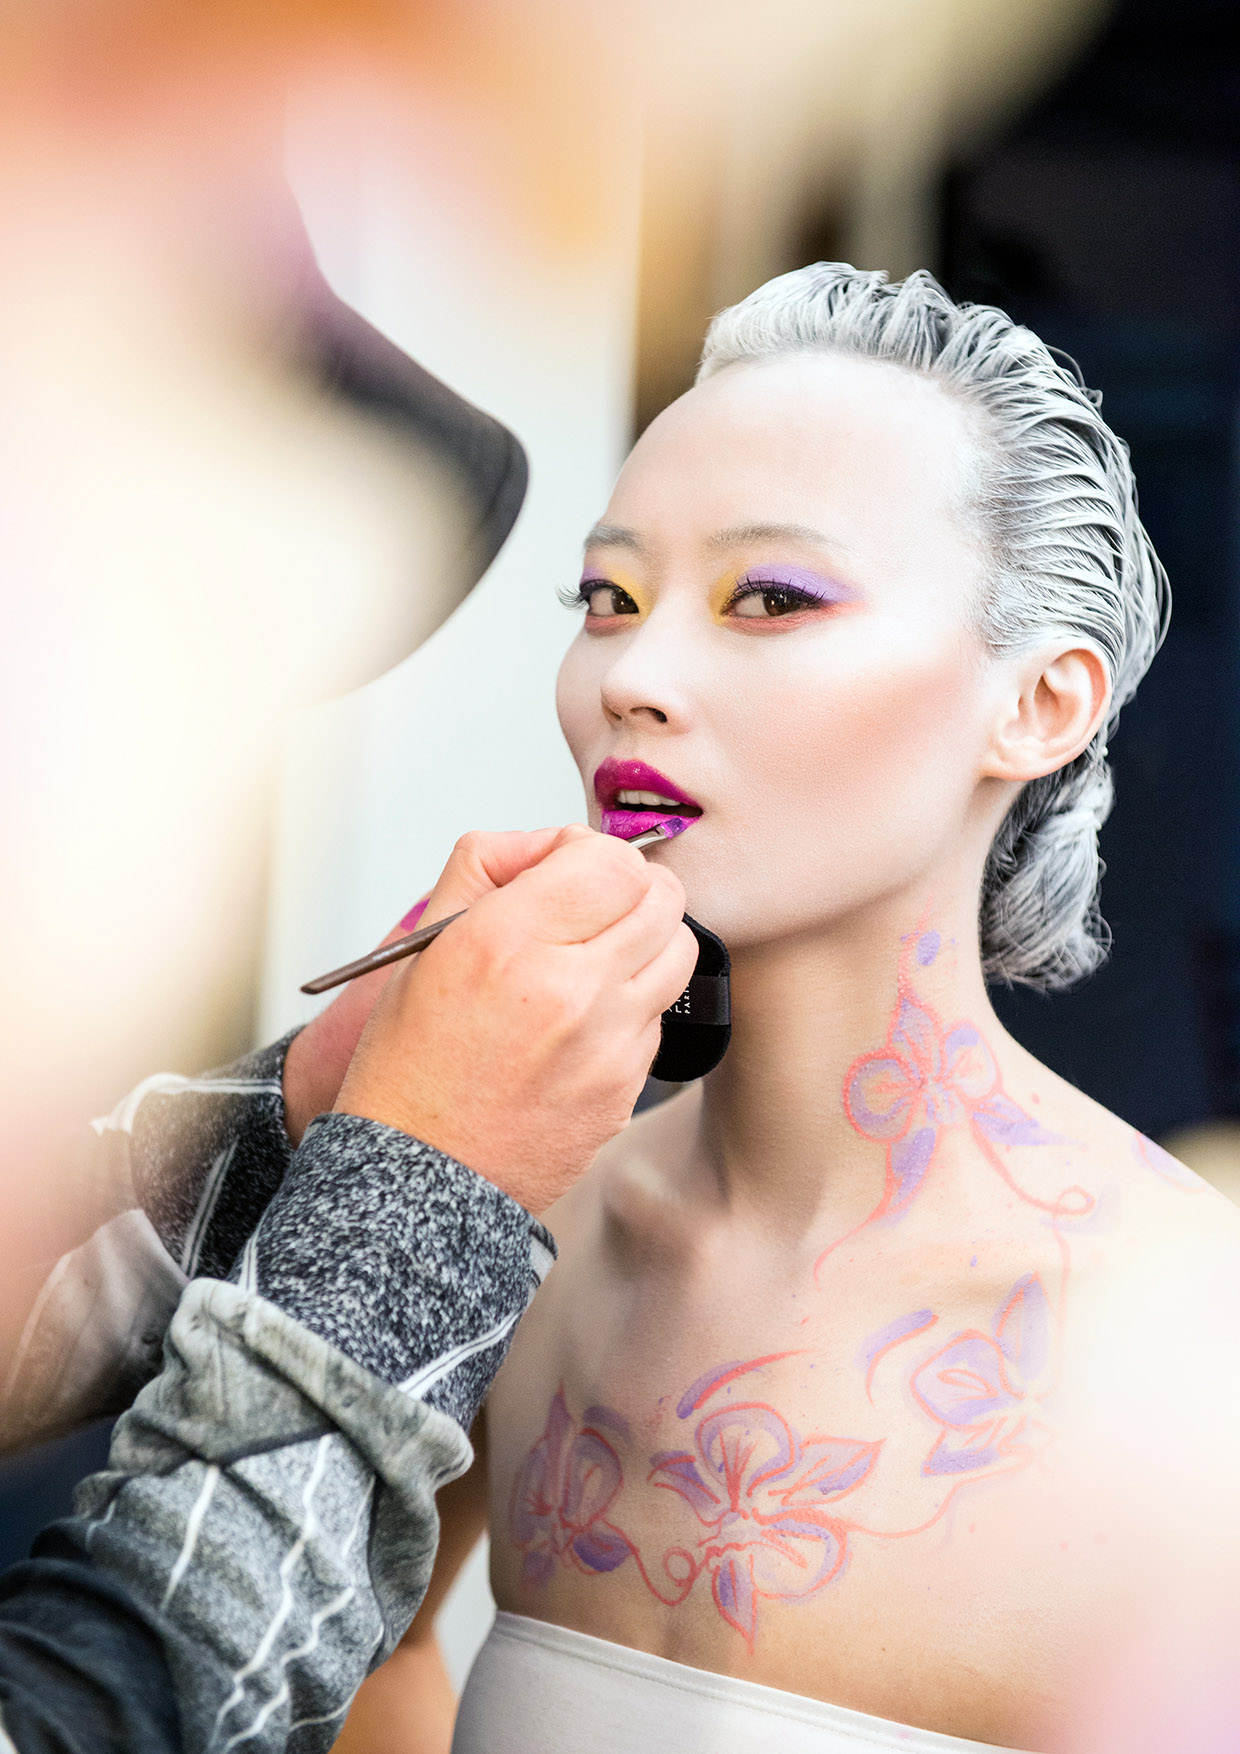 BAckstage Spring 2016 model ; LI XIAOXING photo : RANKIN backstage : IGNACZAK / MAKE UP FOR EVER